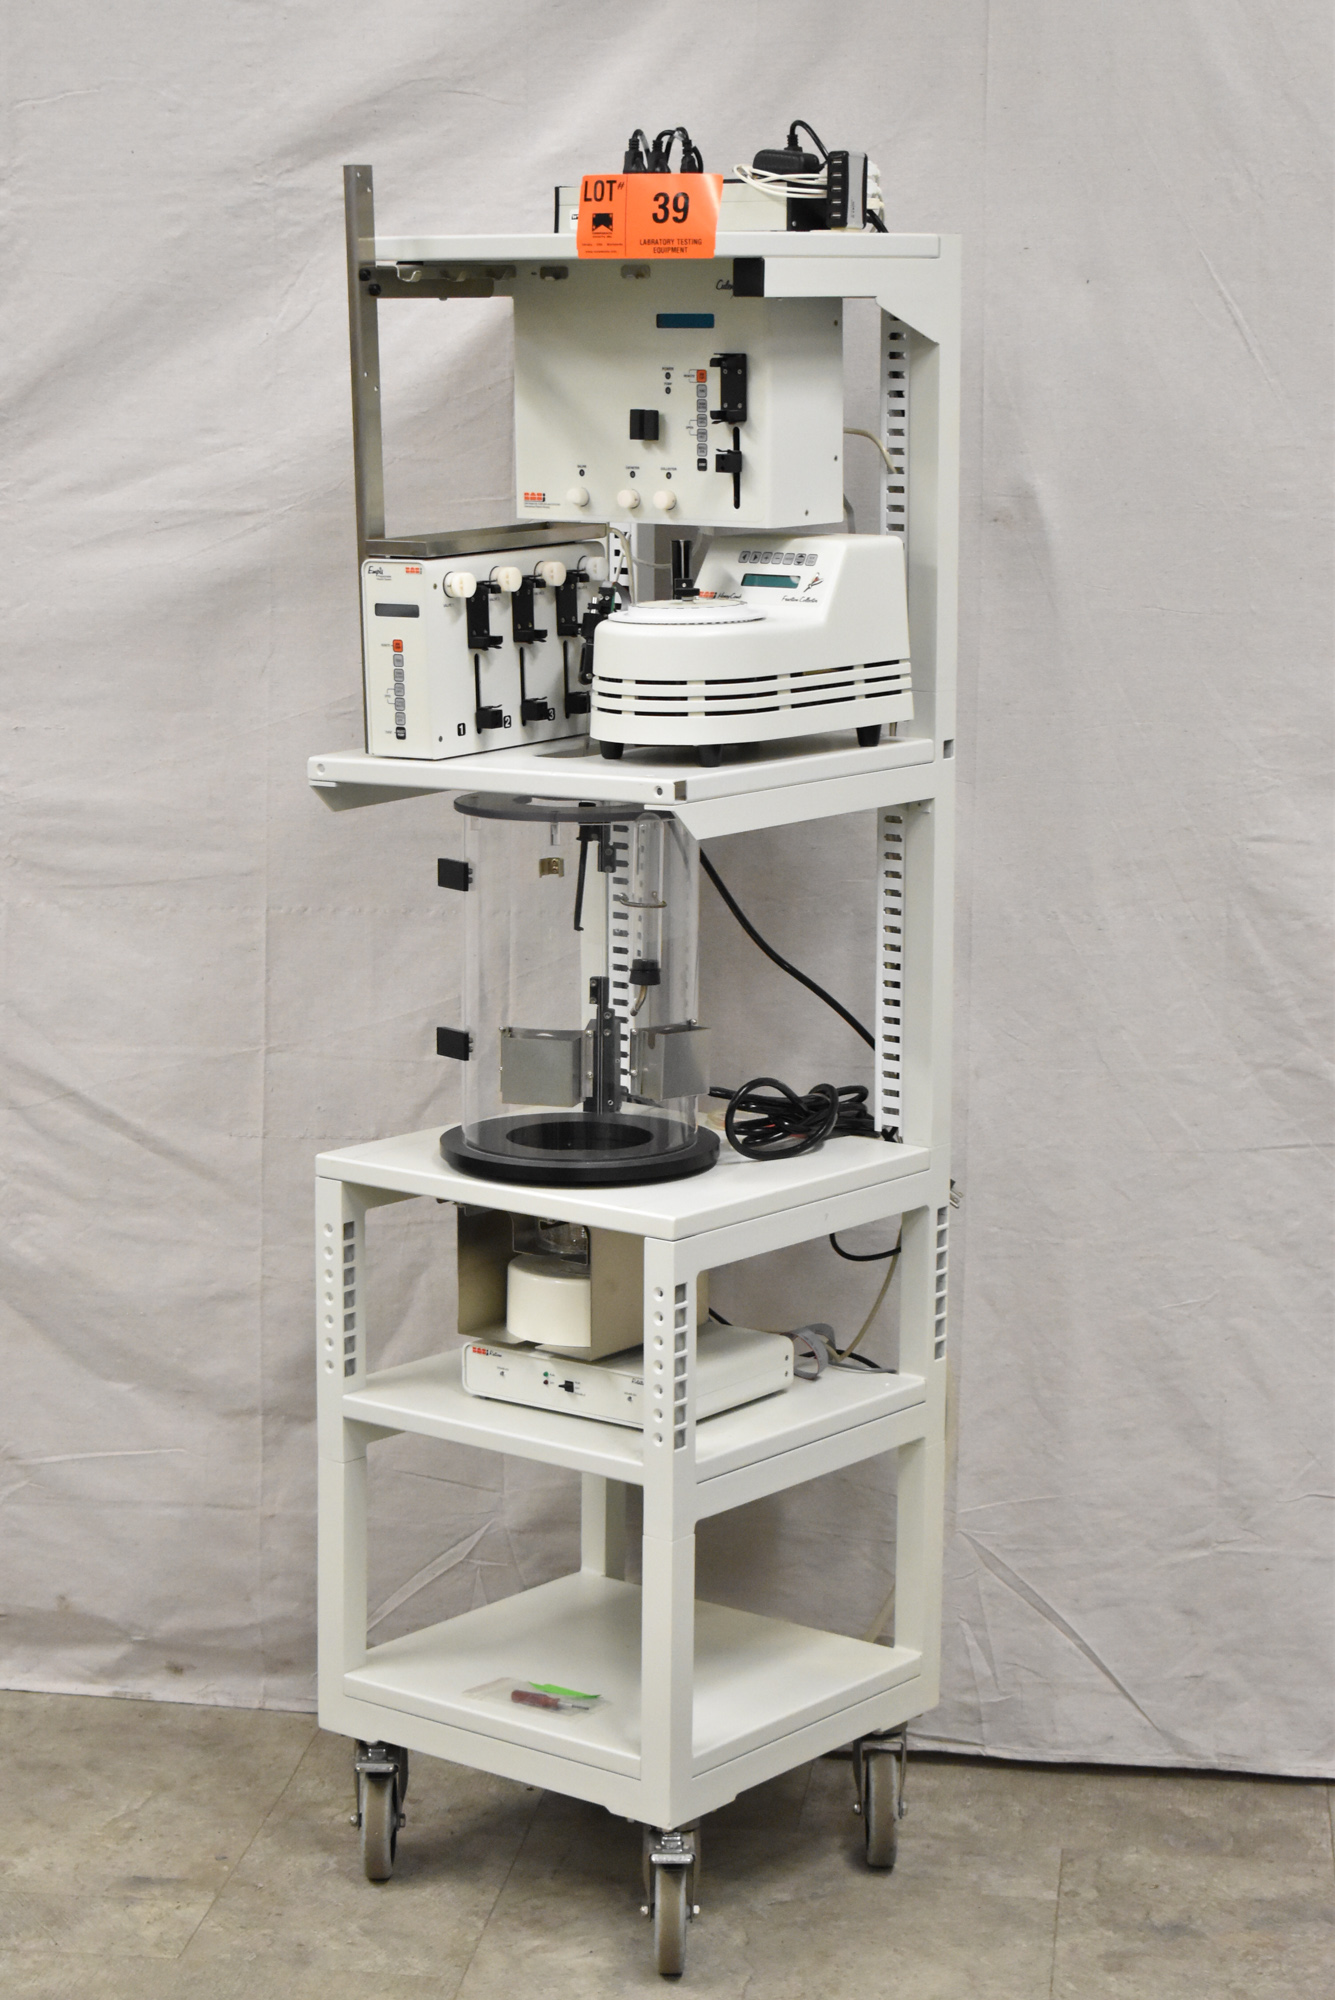 CULEX MICRO-DIALYSIS SYSTEM CONSISTING OF CULEX EMPIS PROGRAMMABLE INFUSION SYSTEM, CULEX HONEY COMB